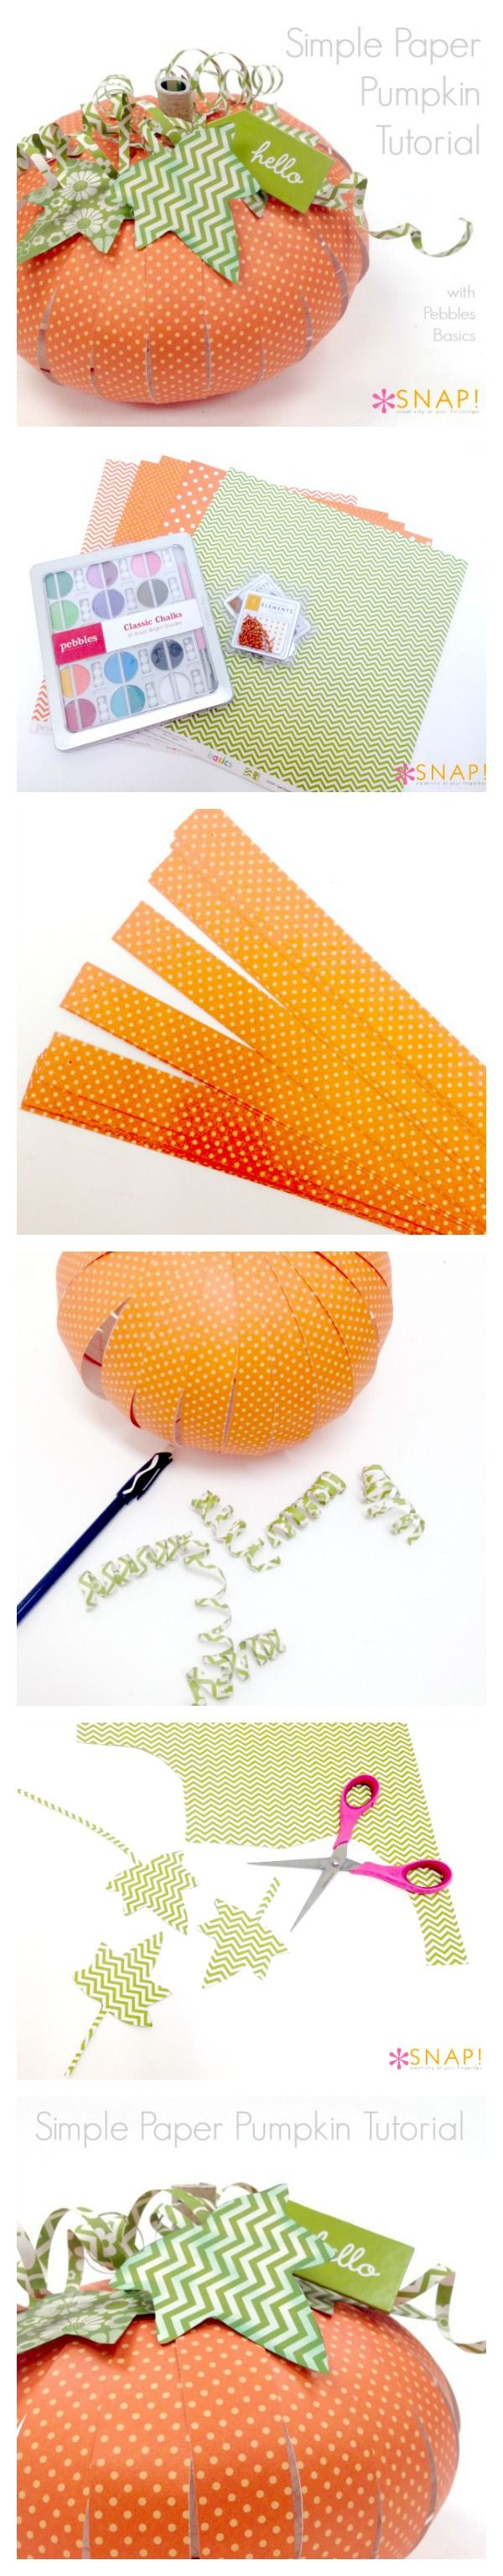 How to make a simple paper pumpkin - great for decor or a table placecard